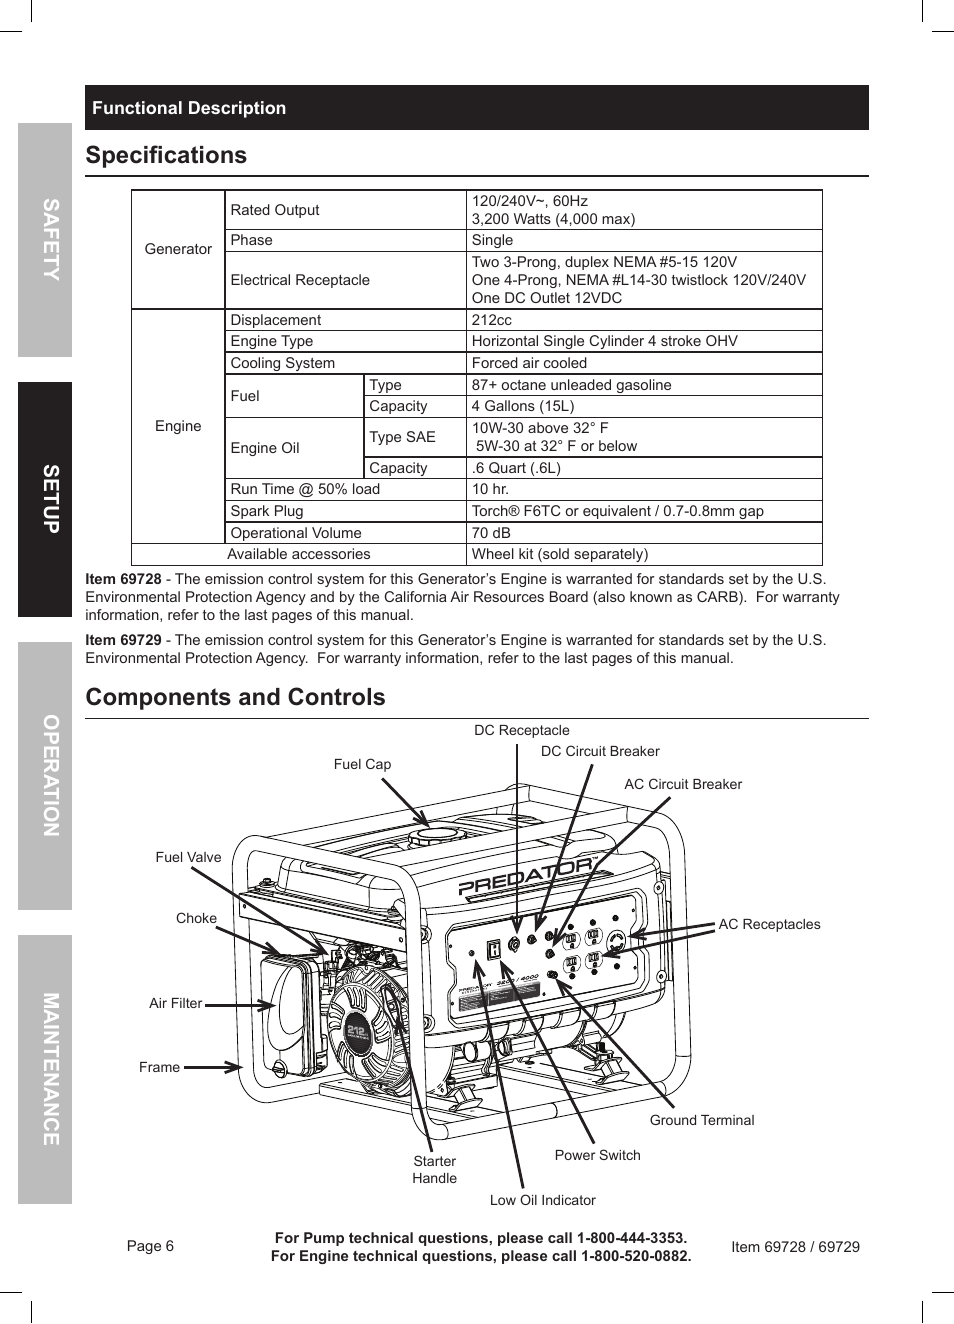 Specifications Components And Controls Harbor Freight Tools Circuit Breaker Dc Generator Predator 69728 User Manual Page 6 24